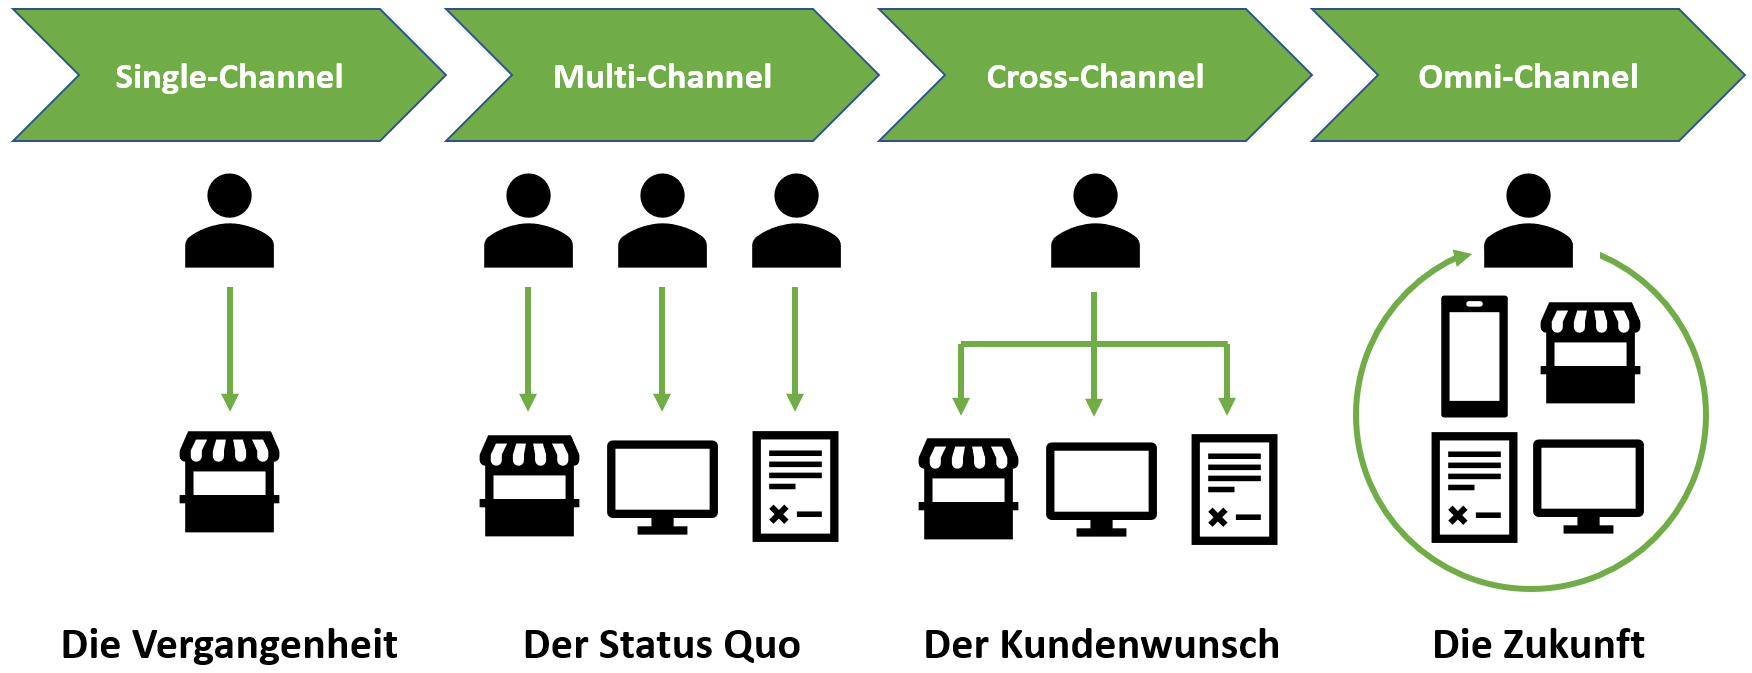 Vom Single-Channel zum Omni-Channel